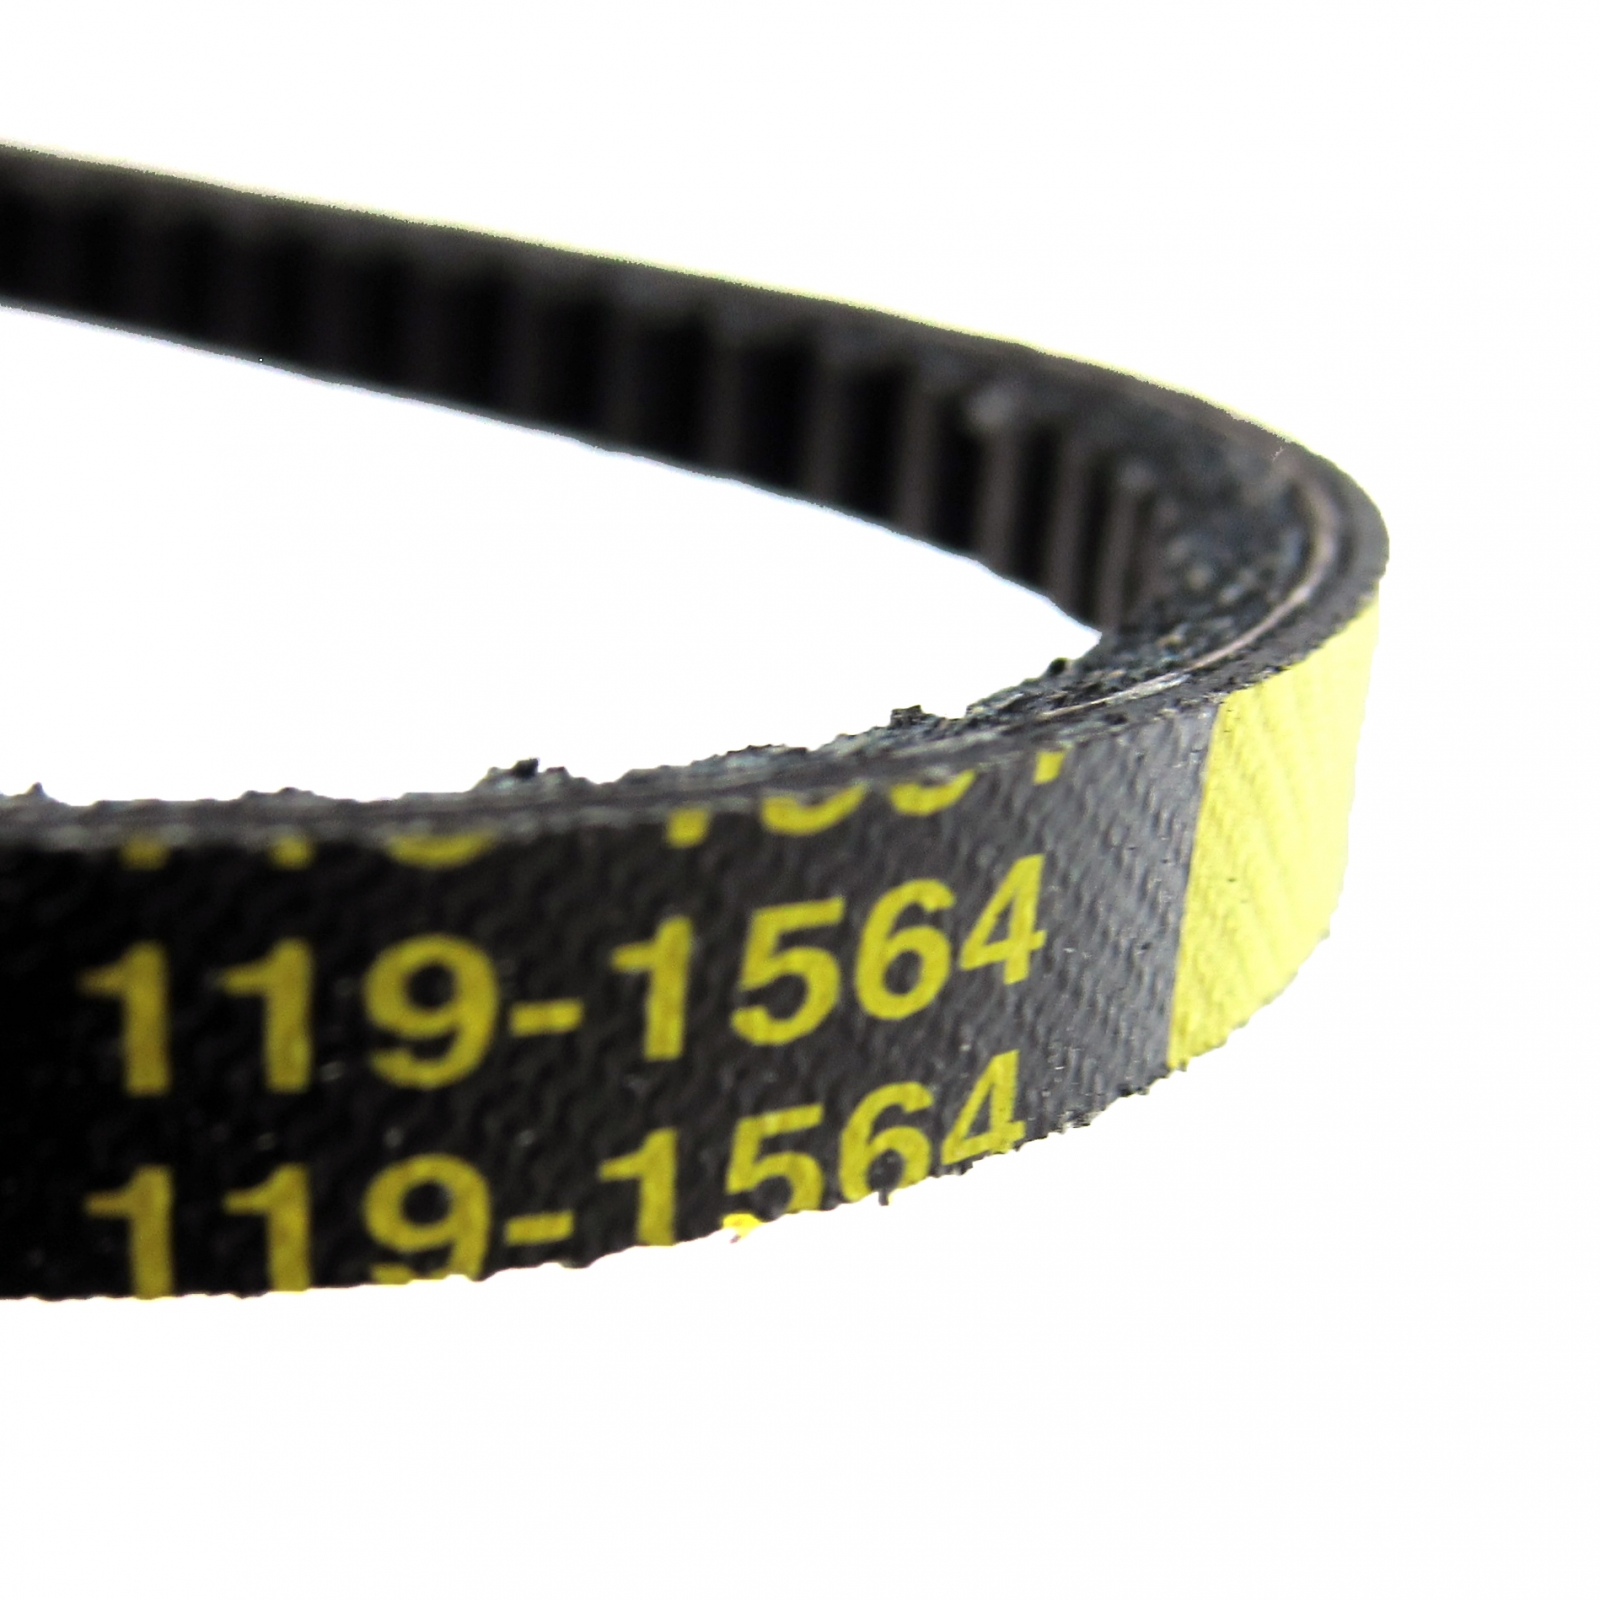 Toro Traction Belt (119-1564)